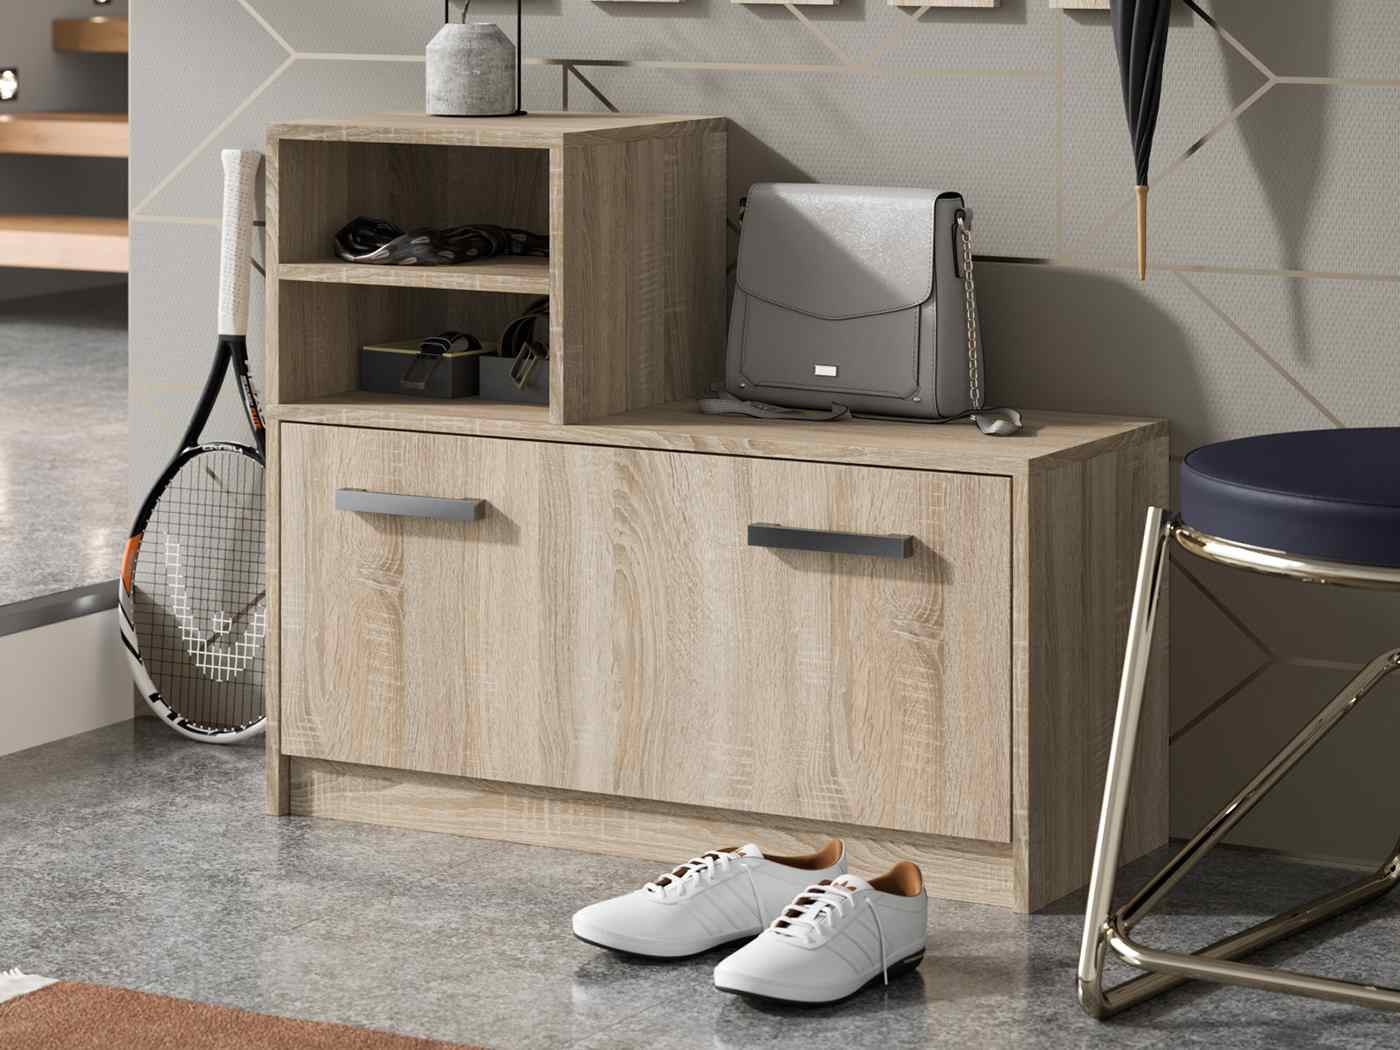 Shoe cabinet Ruby coulour white oak